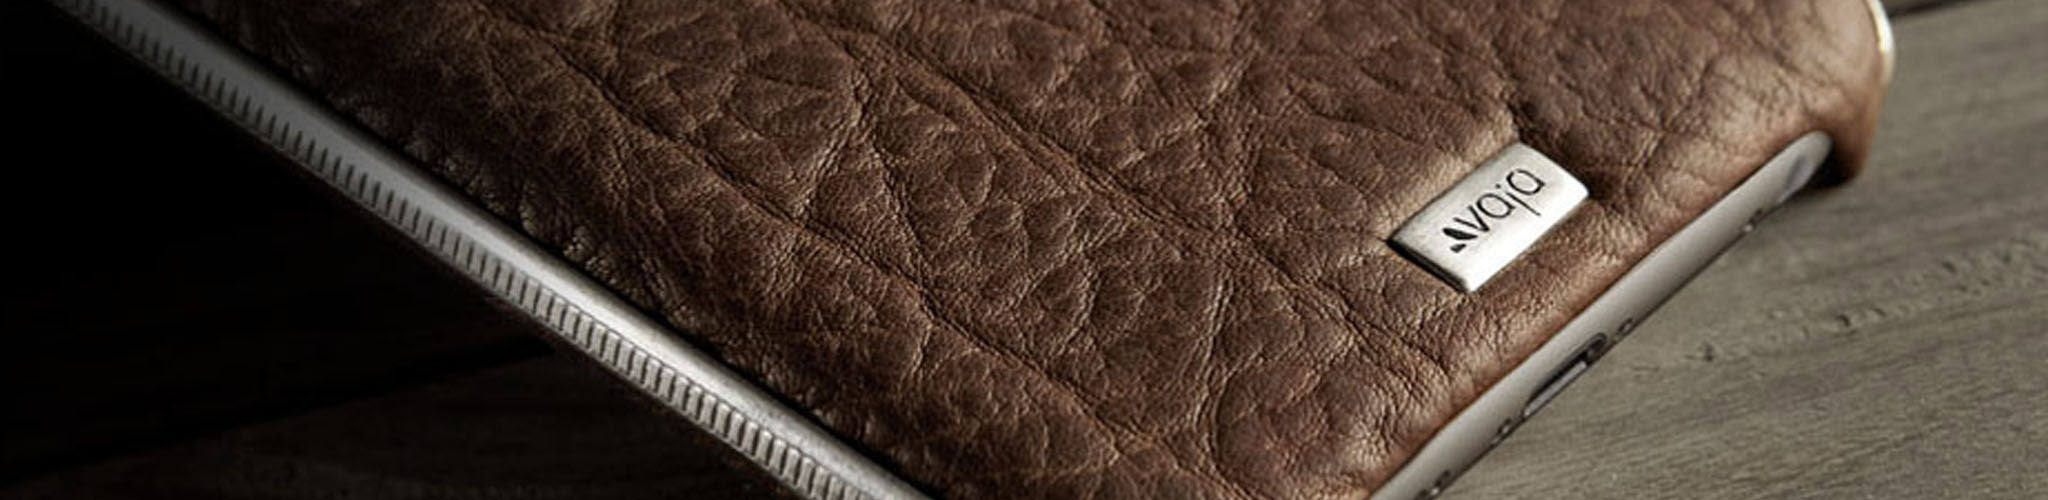 iPhone 6 Leather Cases Wallet Cases premium Natural Leather